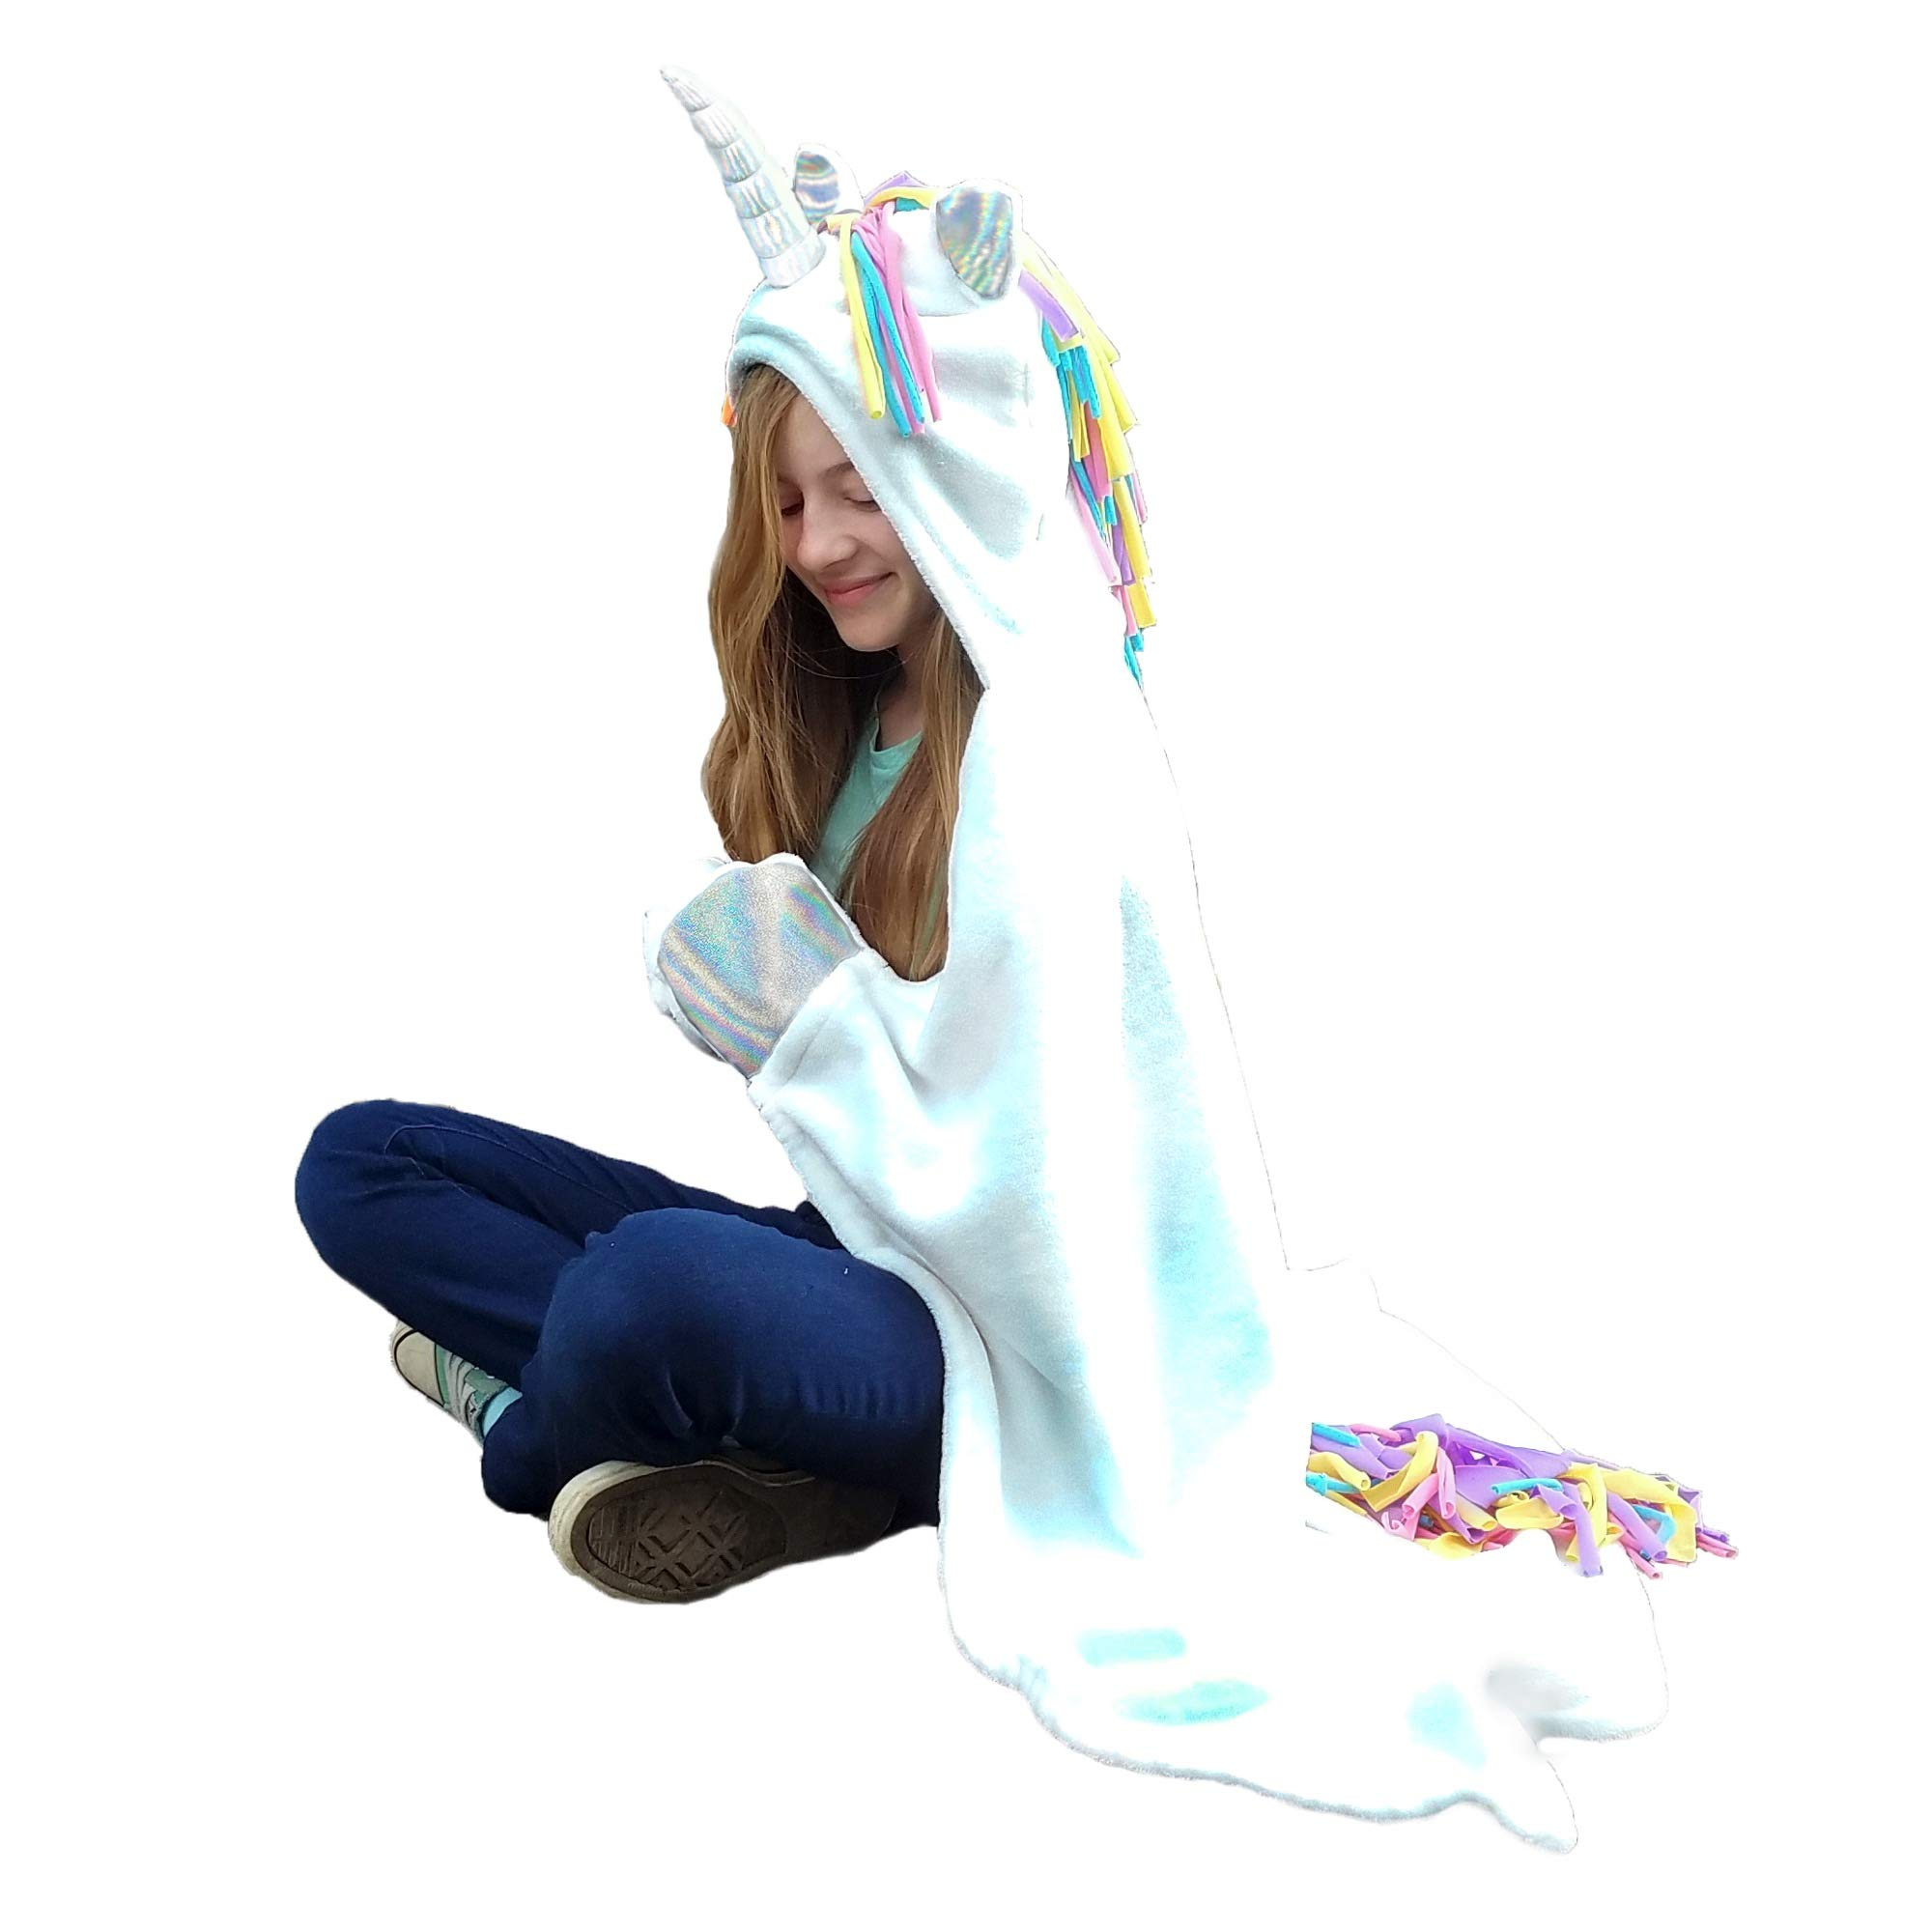 Hooded Unicorn Blanket for Girls, Teens, and Adults, White Plush Wearable Animal Throw with Rainbow and Iridescent Details by Zevany